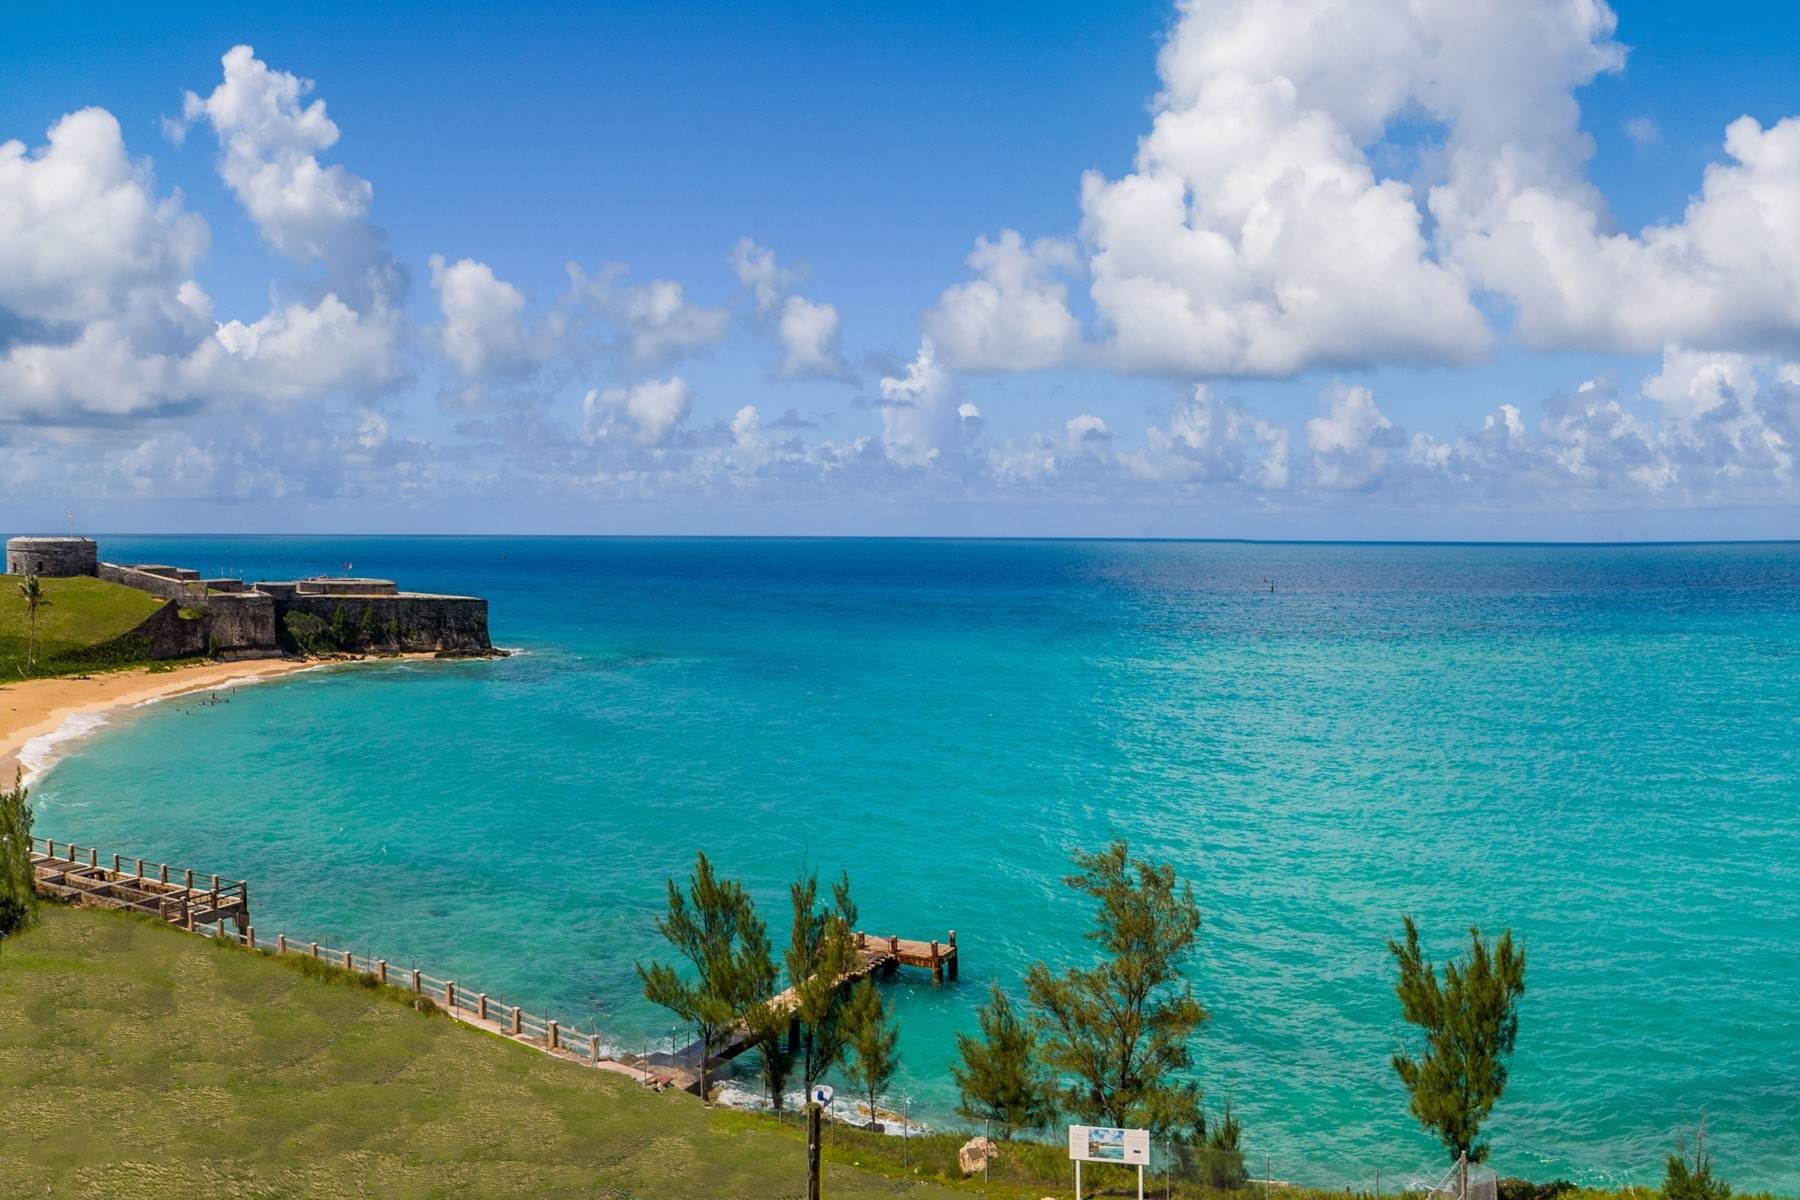 5. Condo / Townhouse / Flat for Sale at St. Regis Bermuda Residences - Jobson's Cove 4A St. Catherine's Beach St Georges Parish, GE03 Bermuda